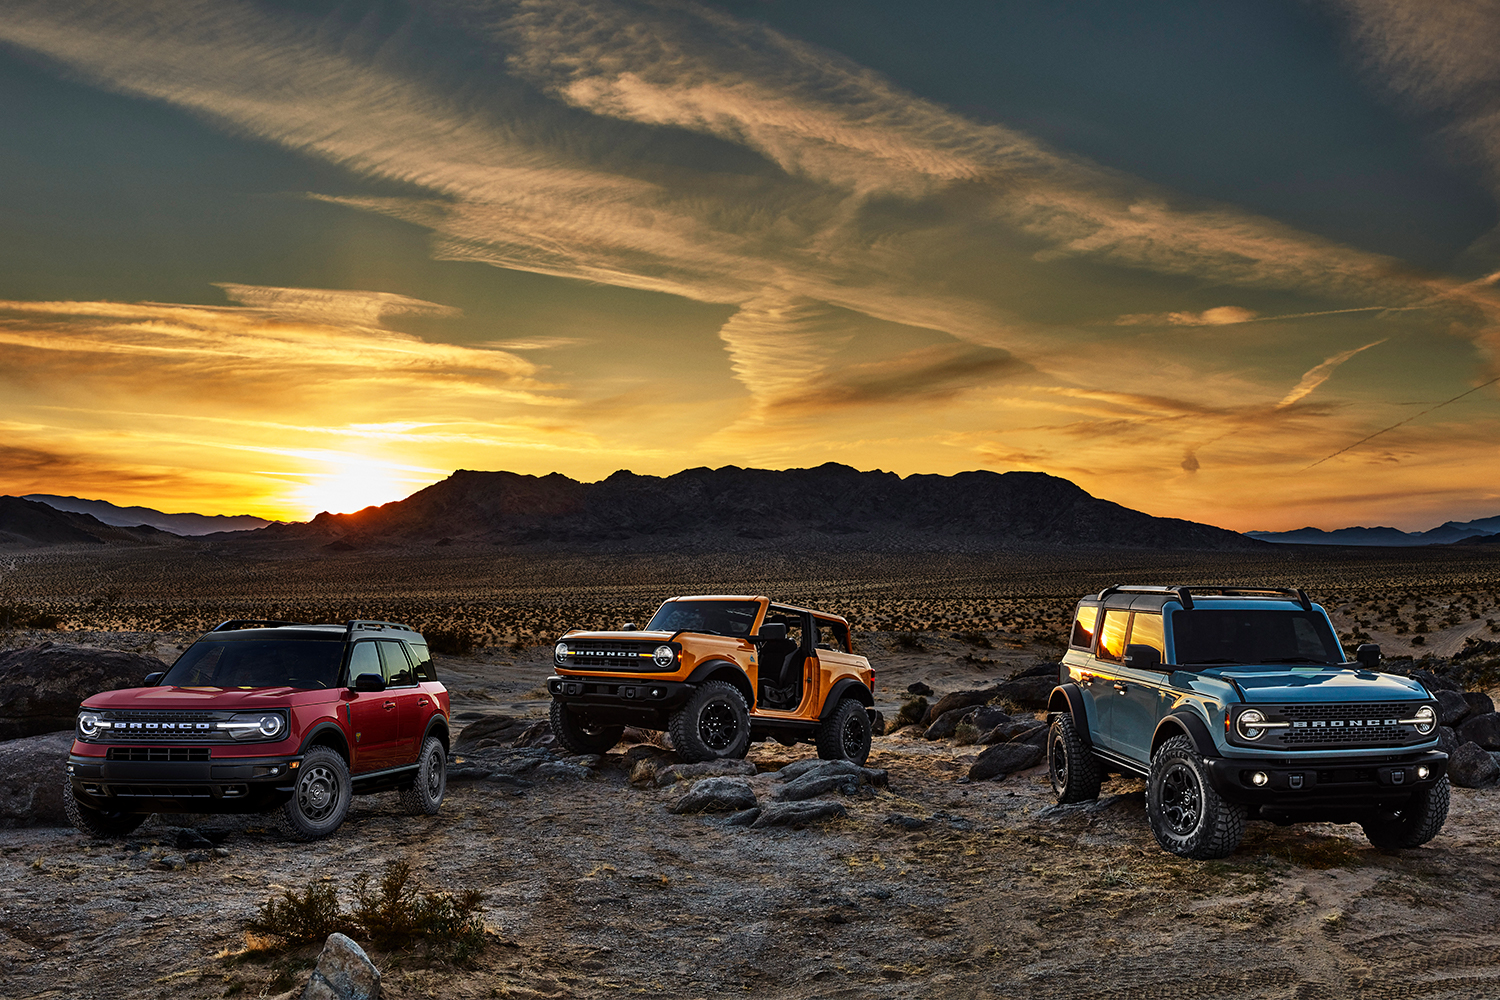 2021 Ford Bronco family, including the two-door, four-door and Sport models